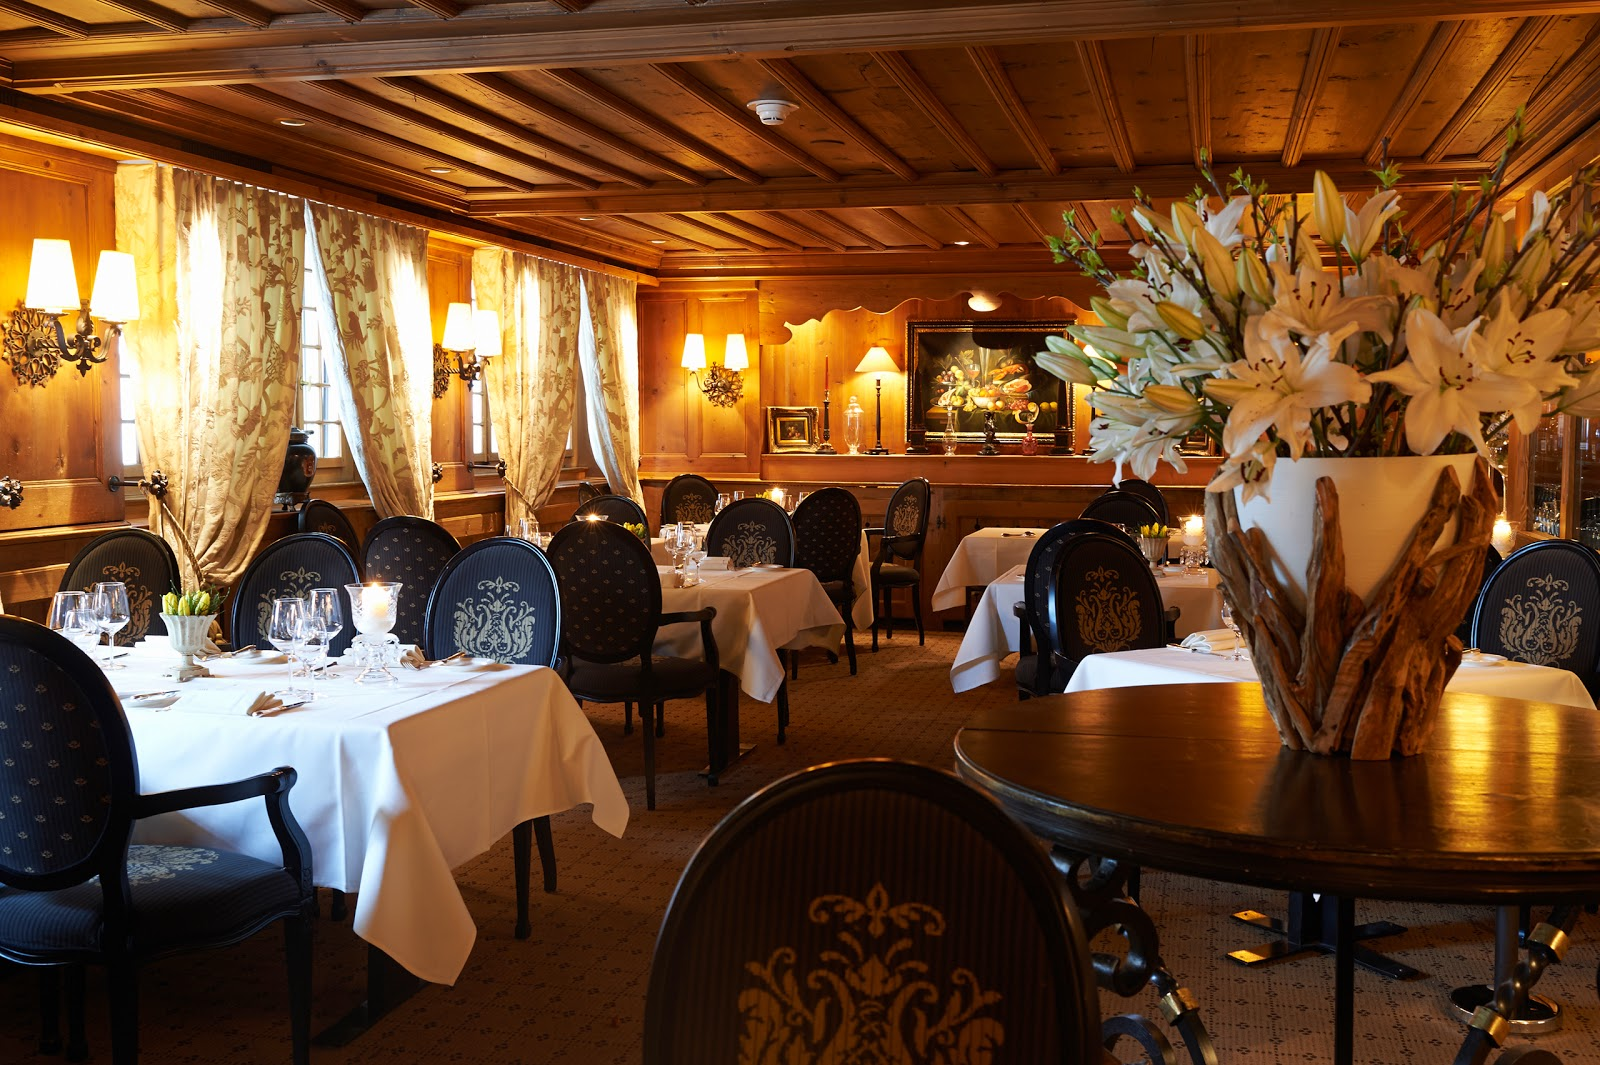 Le Grill at the Gstaad Palace. Photo: Gstaad Palace.